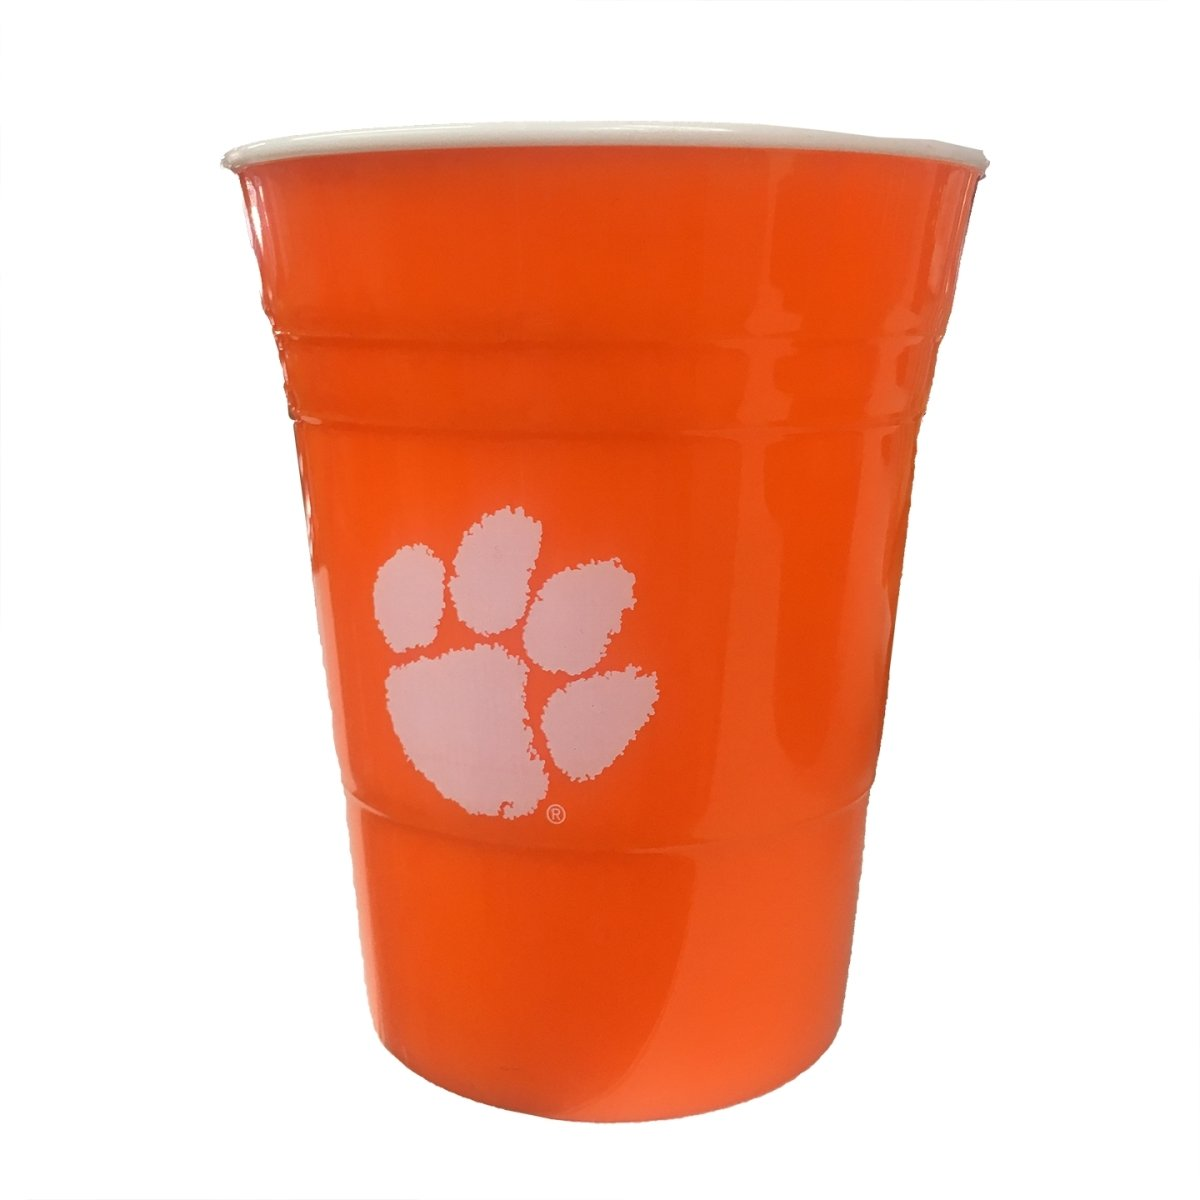 16 Oz Reusable Plastic Party Cup - Mr. Knickerbocker